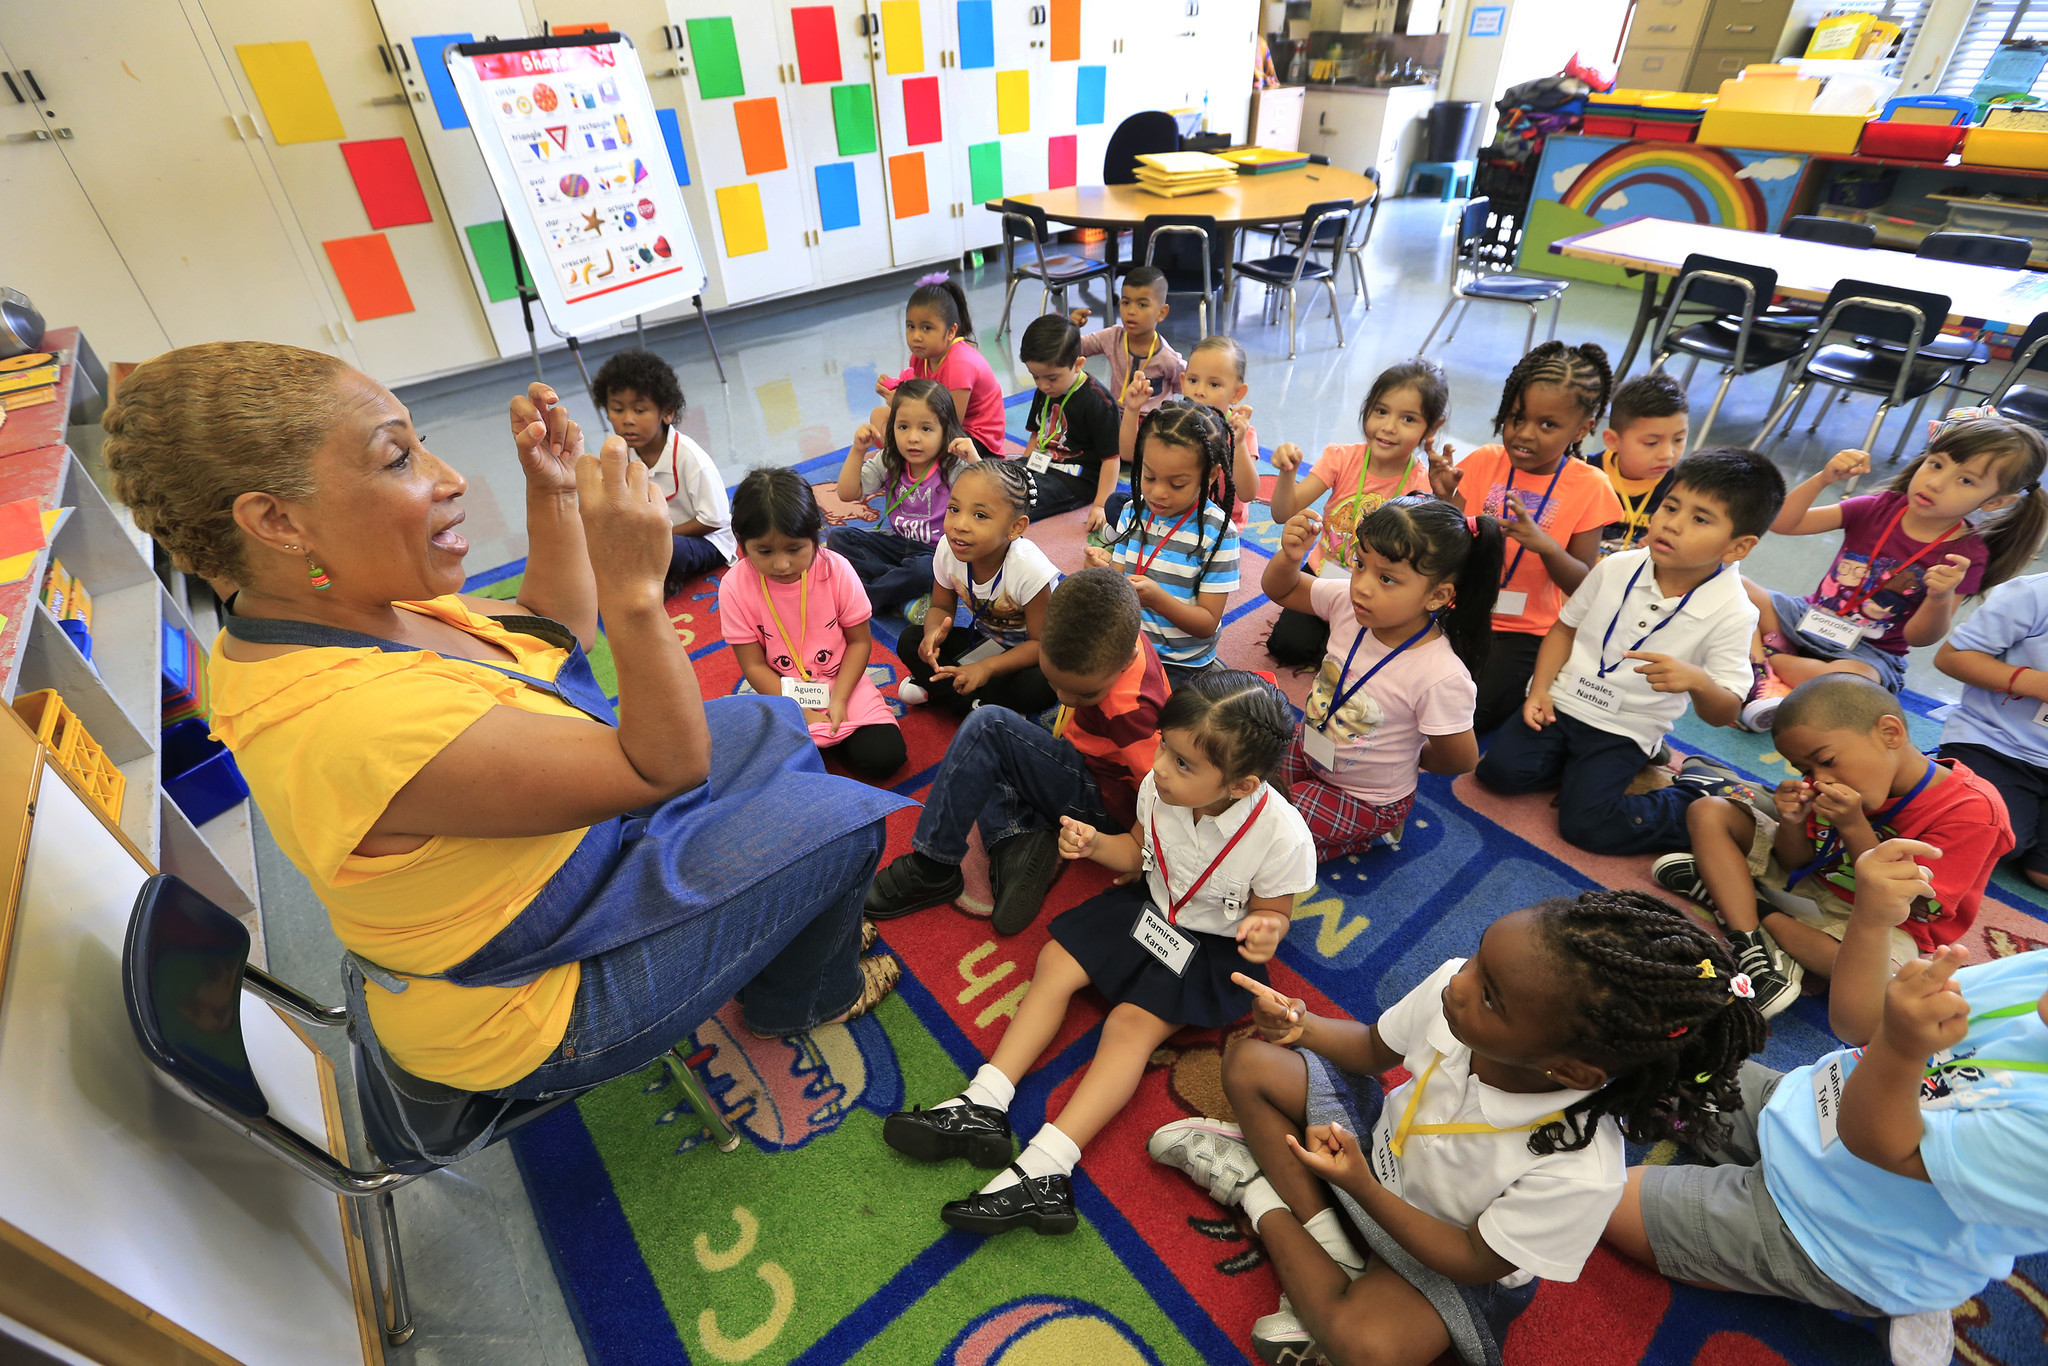 Lisa Harmison taught one of the first expanded transitional kindergarten classes at 186th Street Elementary in 2015.